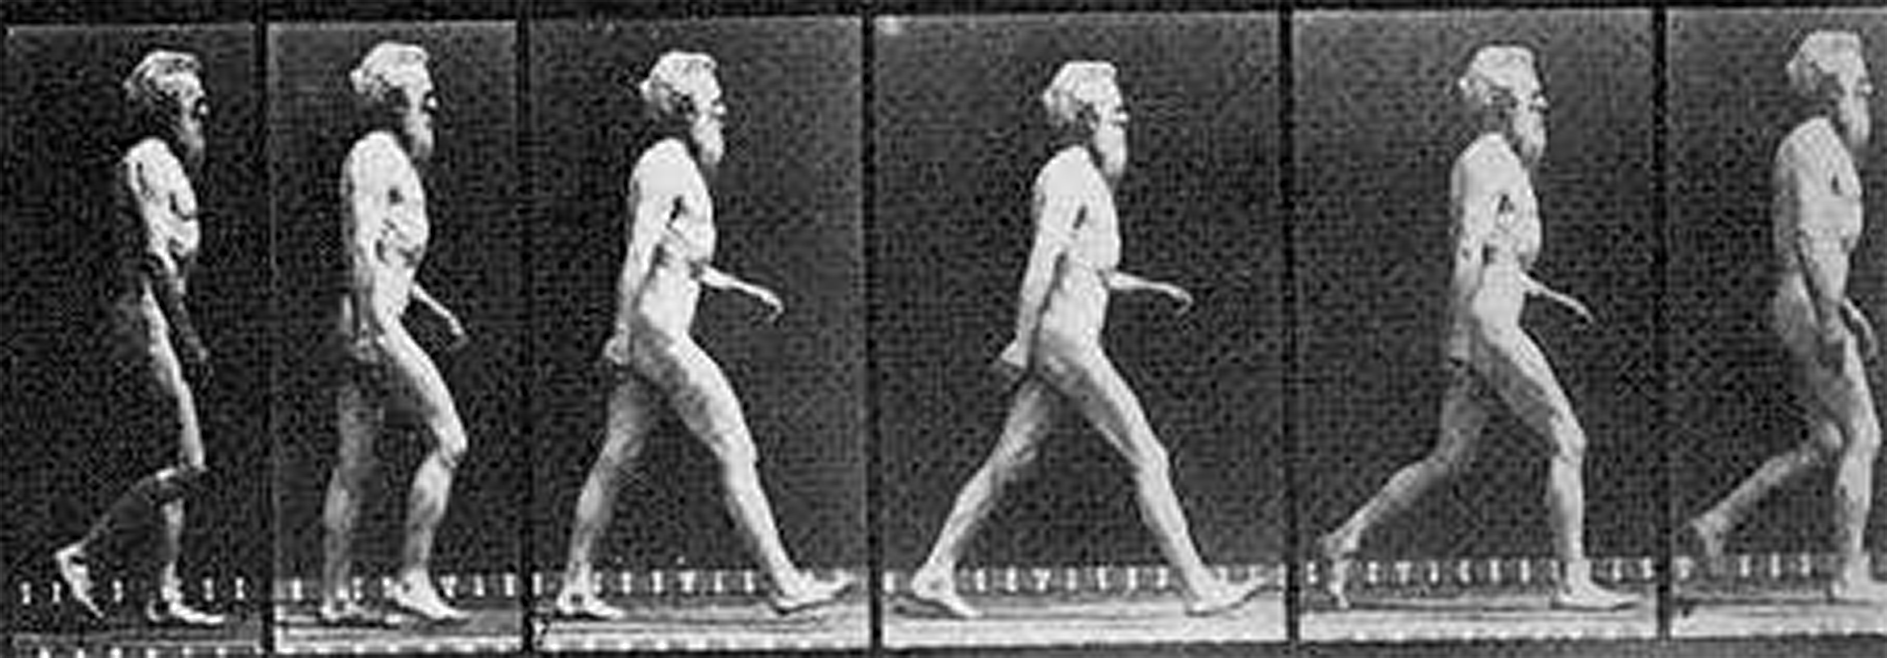 English photographer Eadweard Muybridge (1830-1904), who pioneered the use of multiple cameras to capture motion, is shown walking heel-first as humans usually do. A new University of Utah study shows that stepping onto the heel first requires much less energy than putting the ball of the foot or the toes onto the ground first.